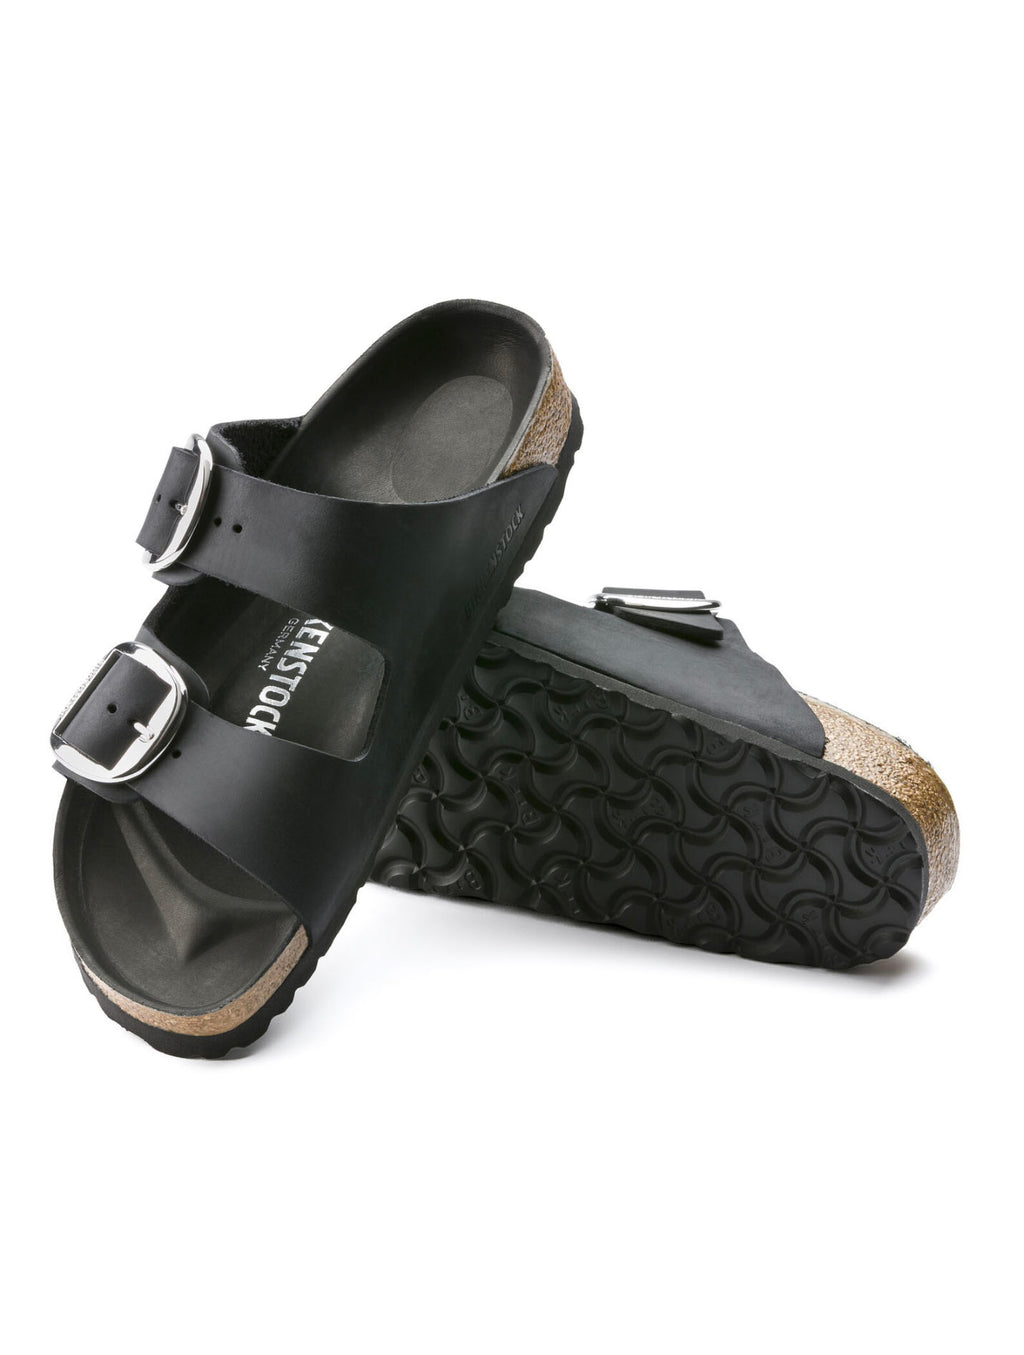 Birkenstock Arizona Big Buckle in Black